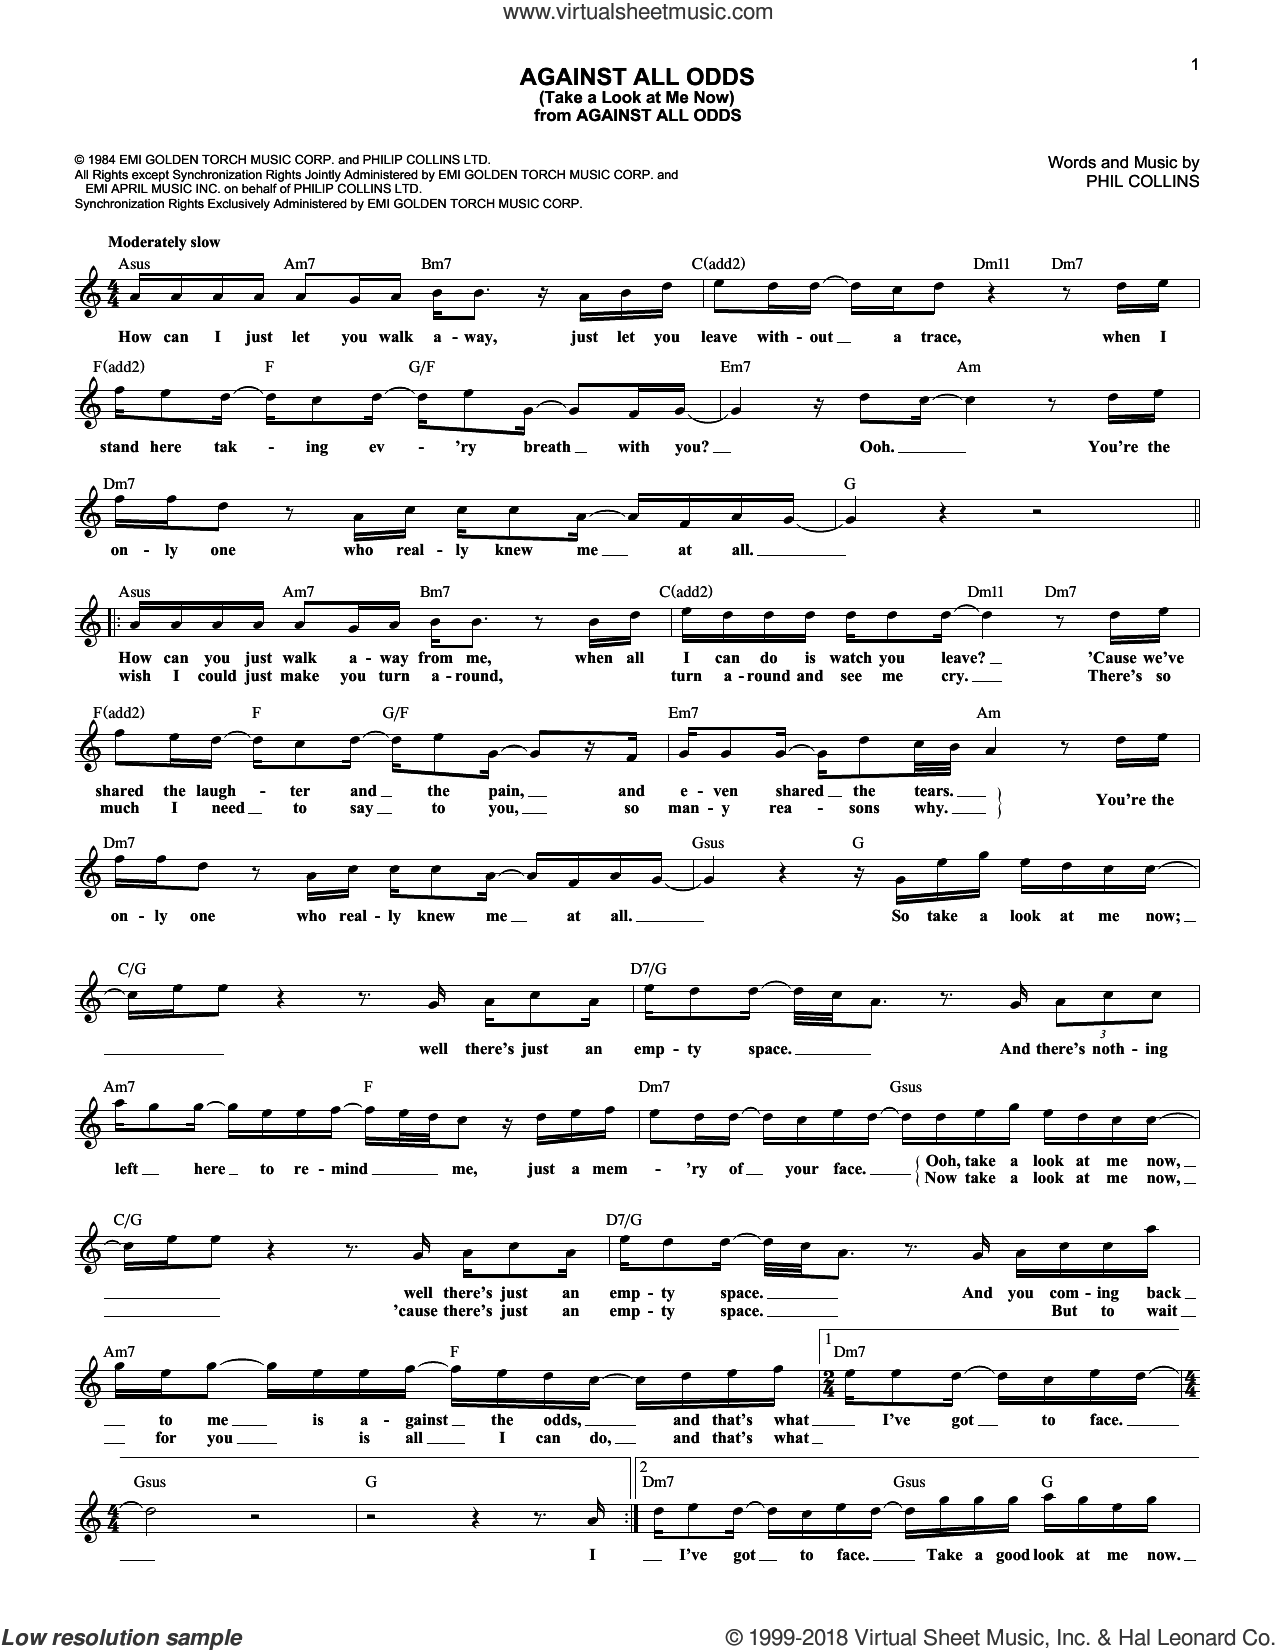 Against All Odds (Take A Look At Me Now) sheet music for voice and other instruments (fake book) by Phil Collins. Score Image Preview.